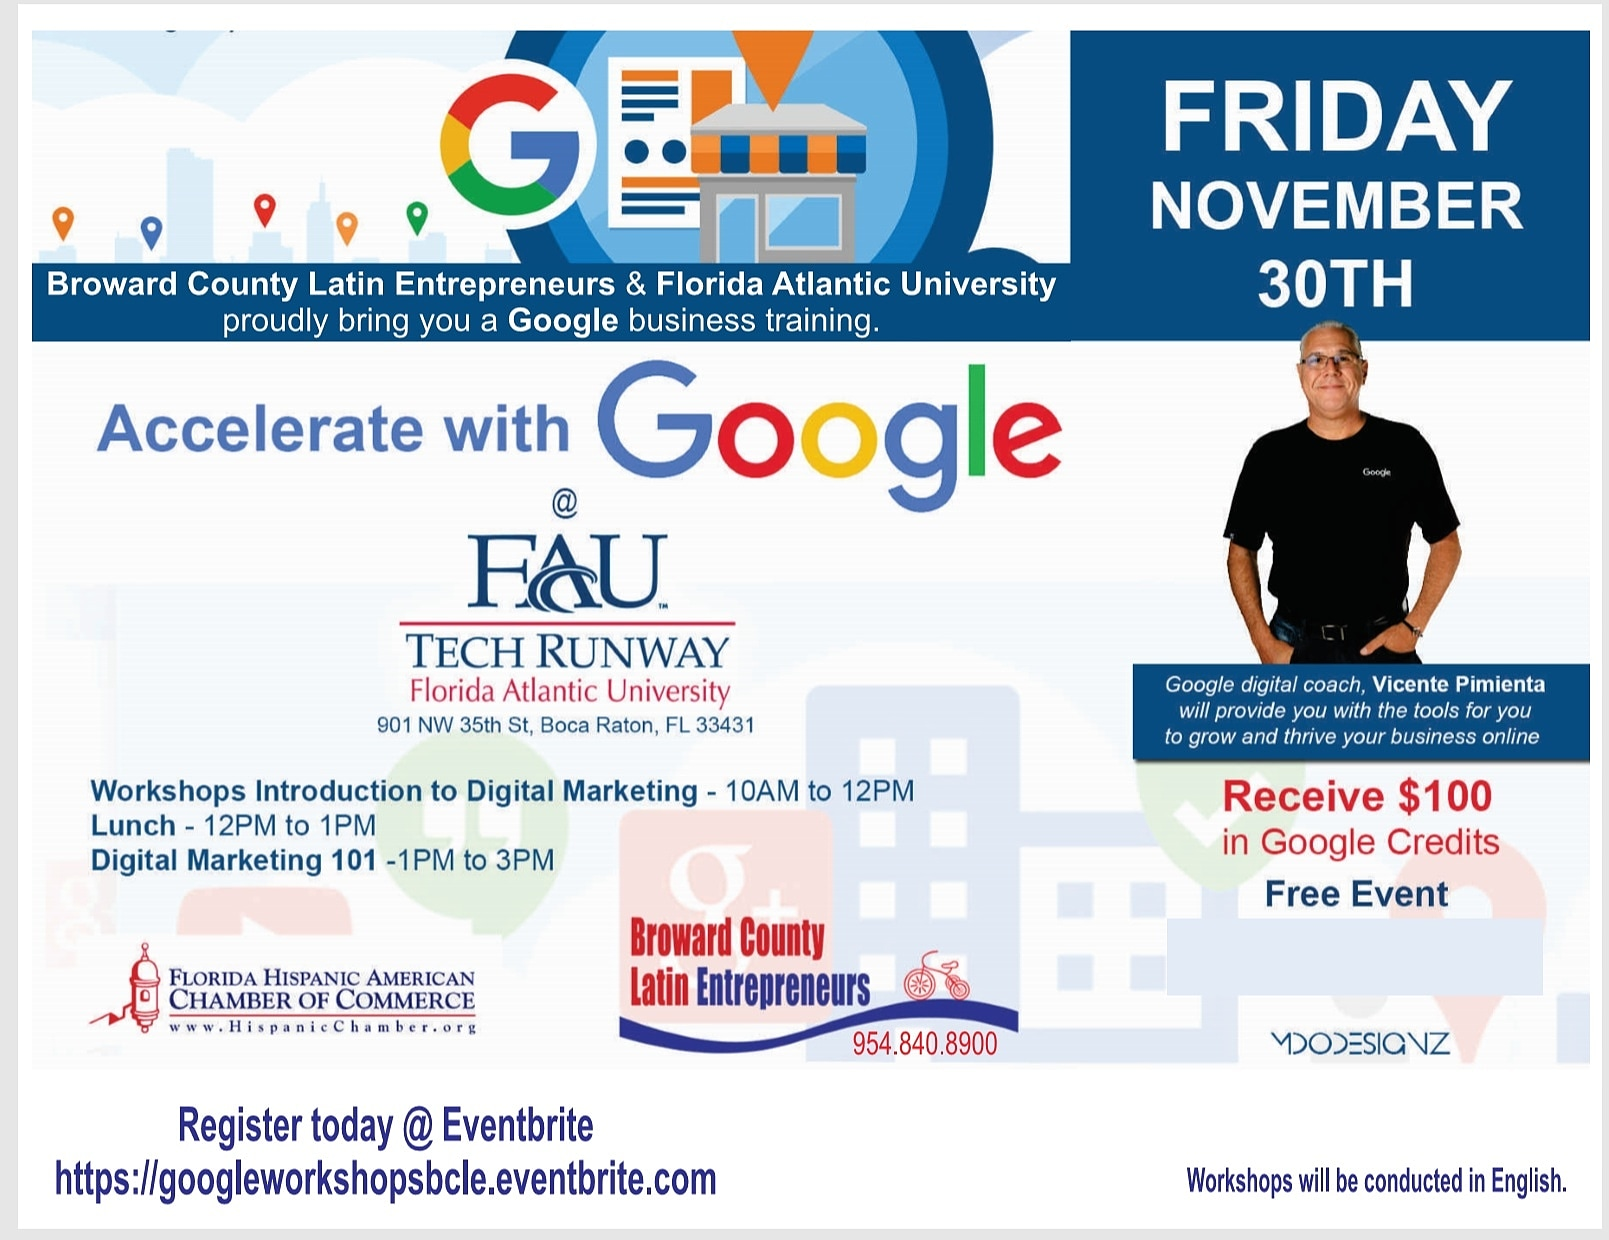 Two Google Digital Marketing workshops in one day!